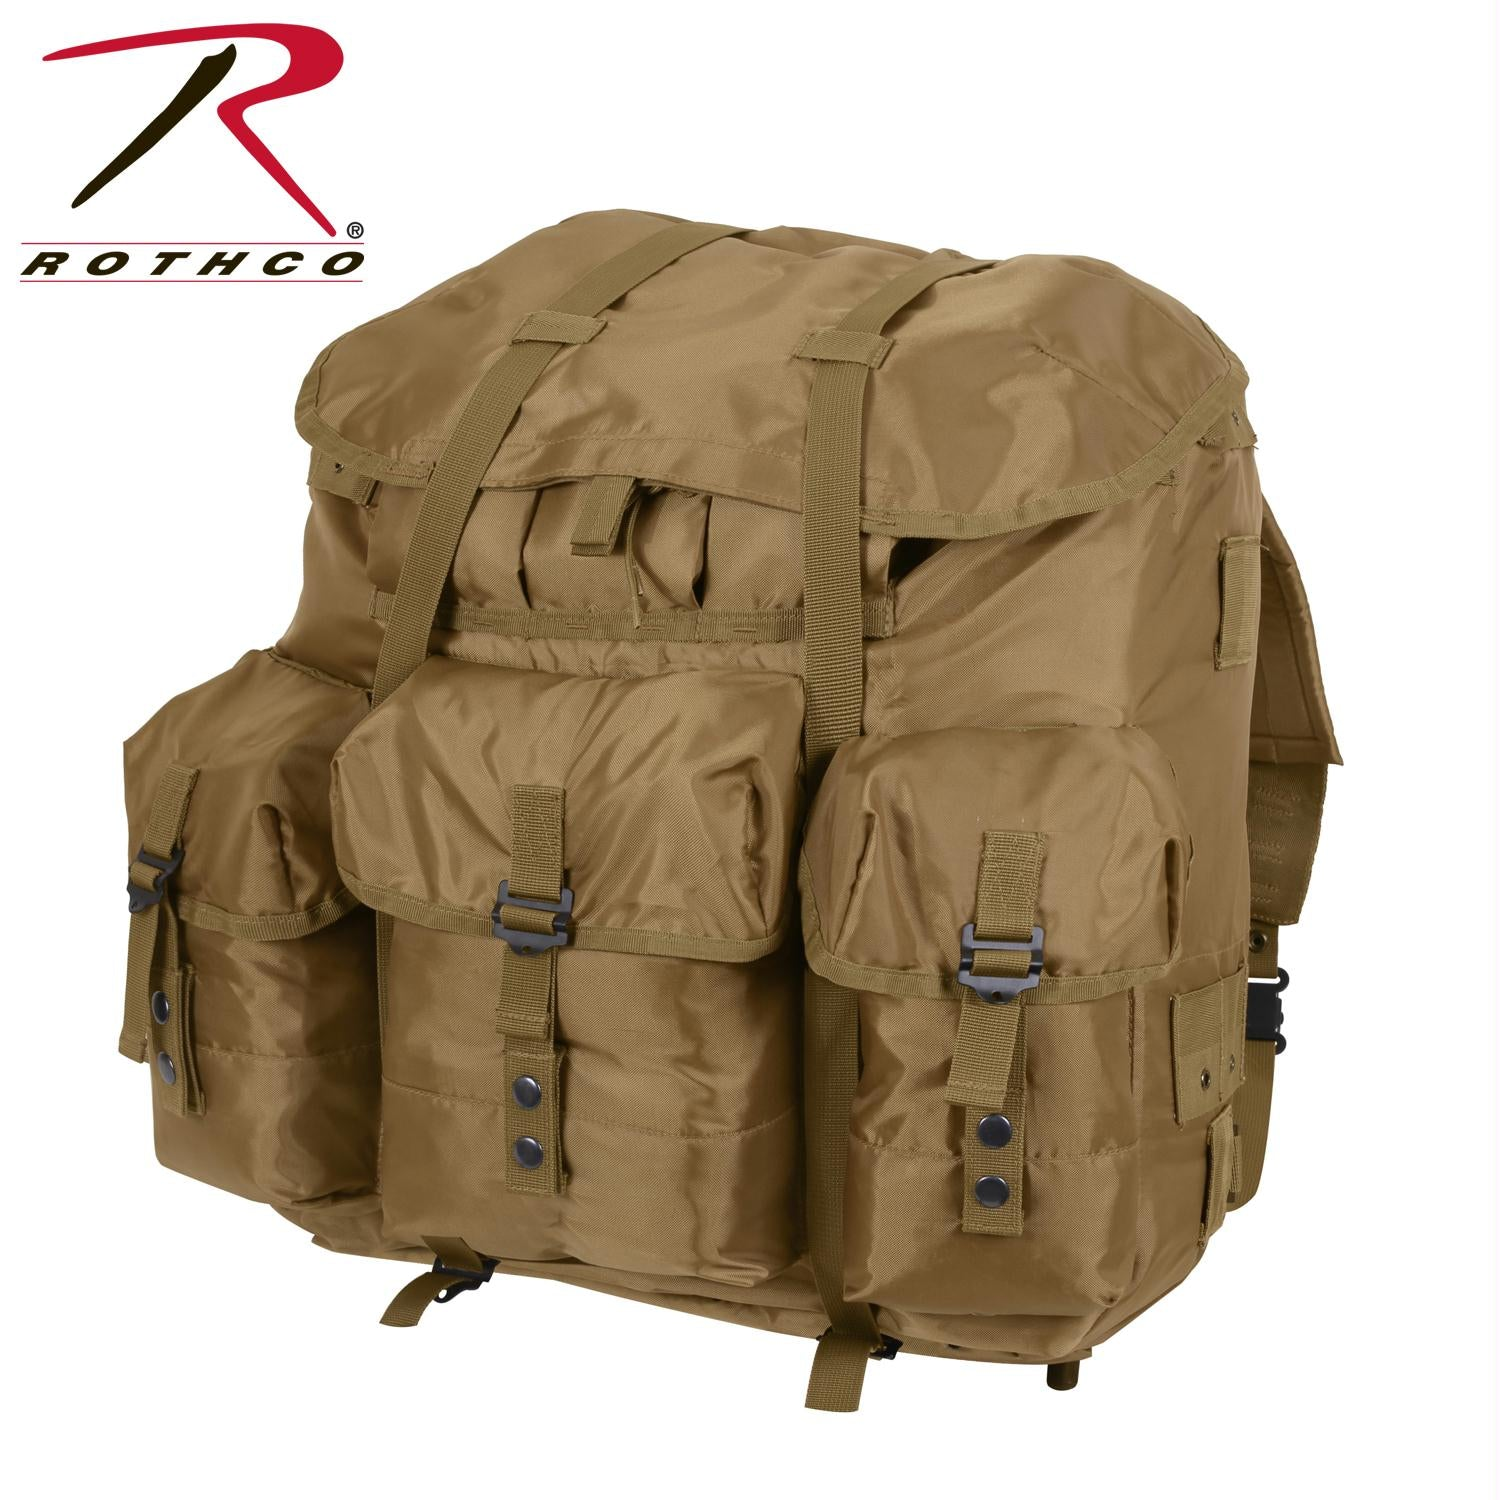 Rothco G.I. Type Large Alice Pack - Coyote Brown